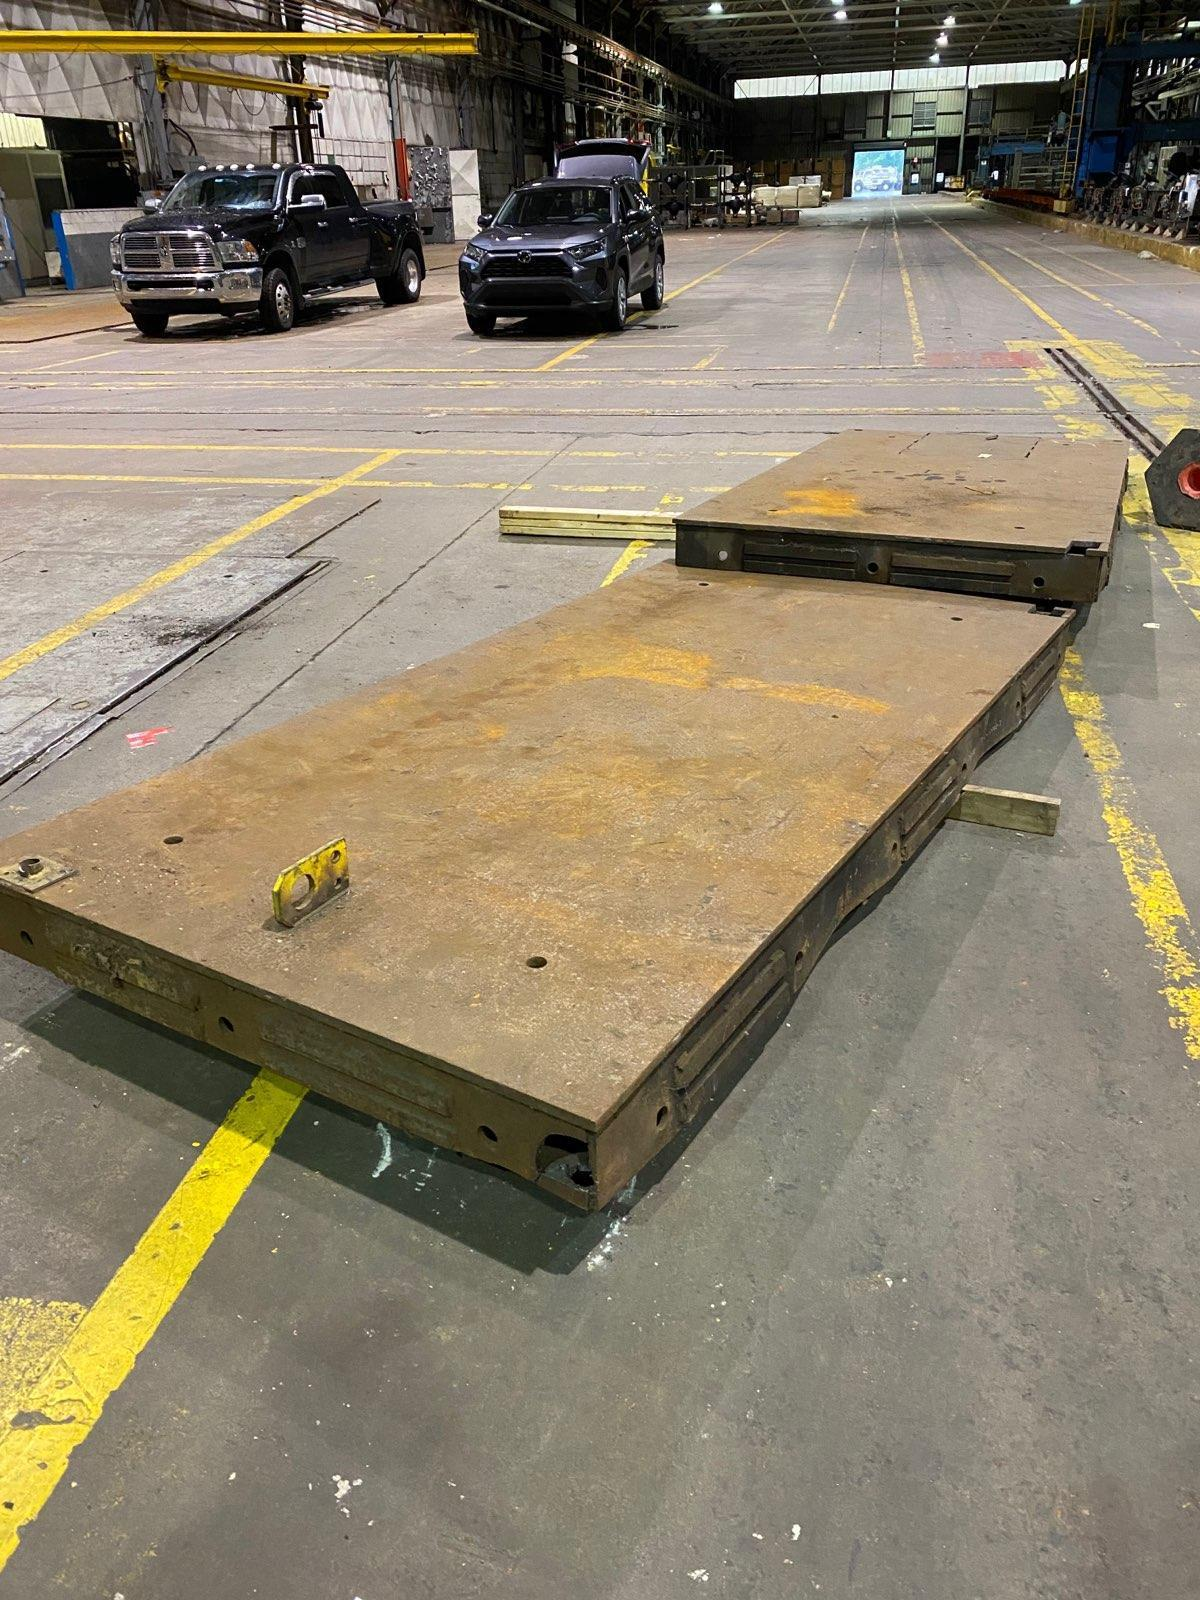 5' X 10' STEEL WELDING TABLE. STOCK # 0953520